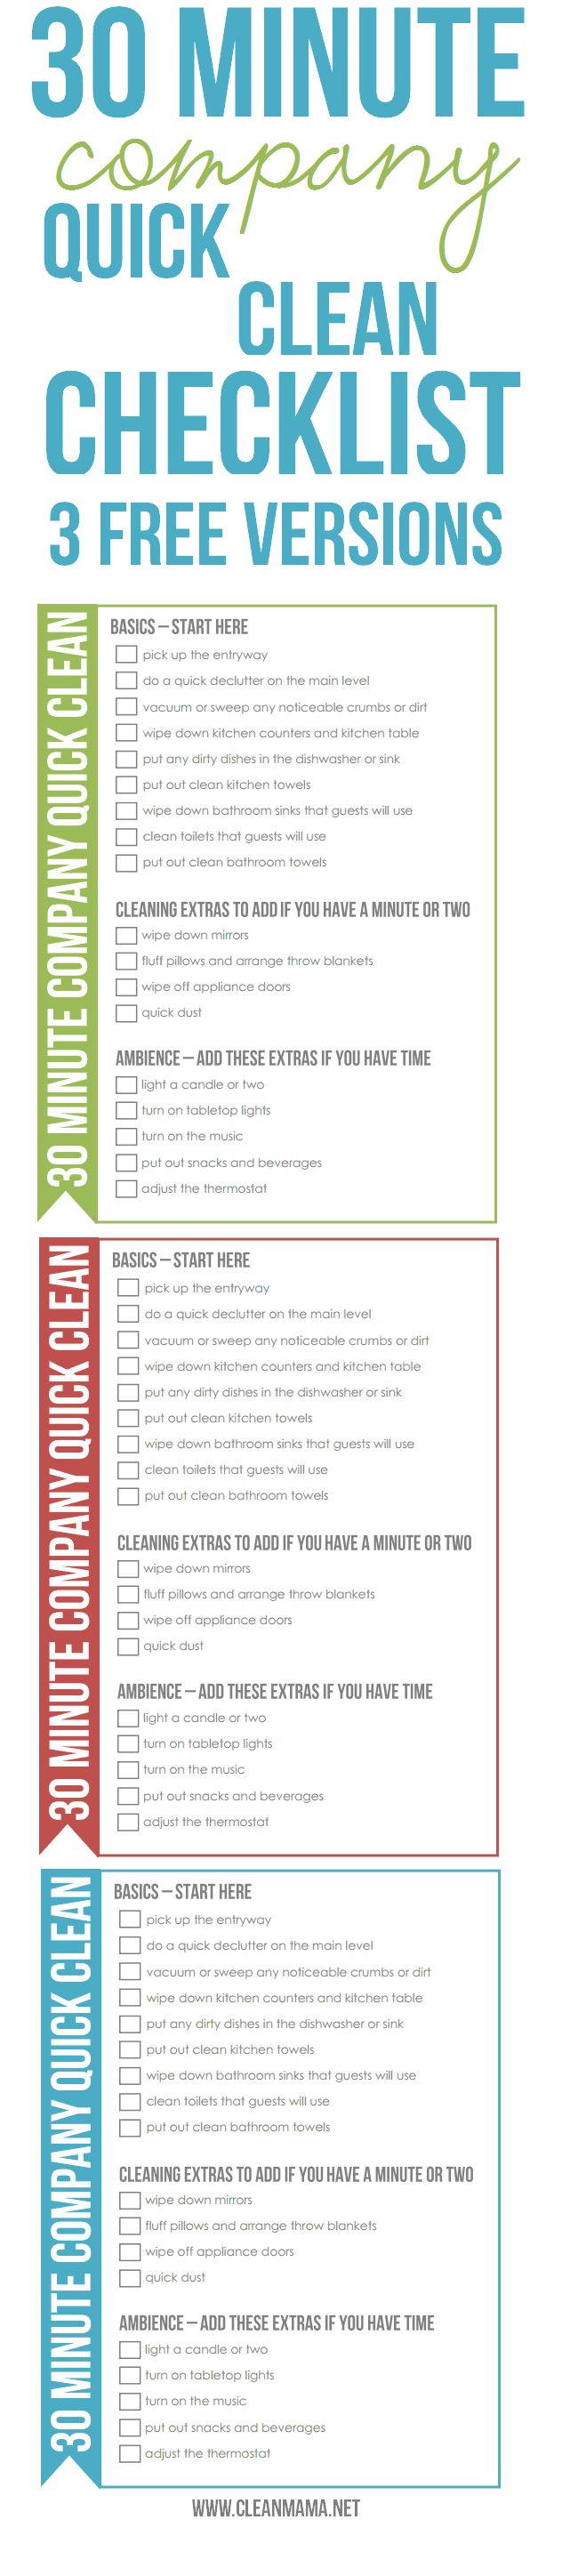 Company dropping by? No need to panic with this handy-dandy 30 Minute Company Quick Clean - 3 FREE Versions via Clean Mama